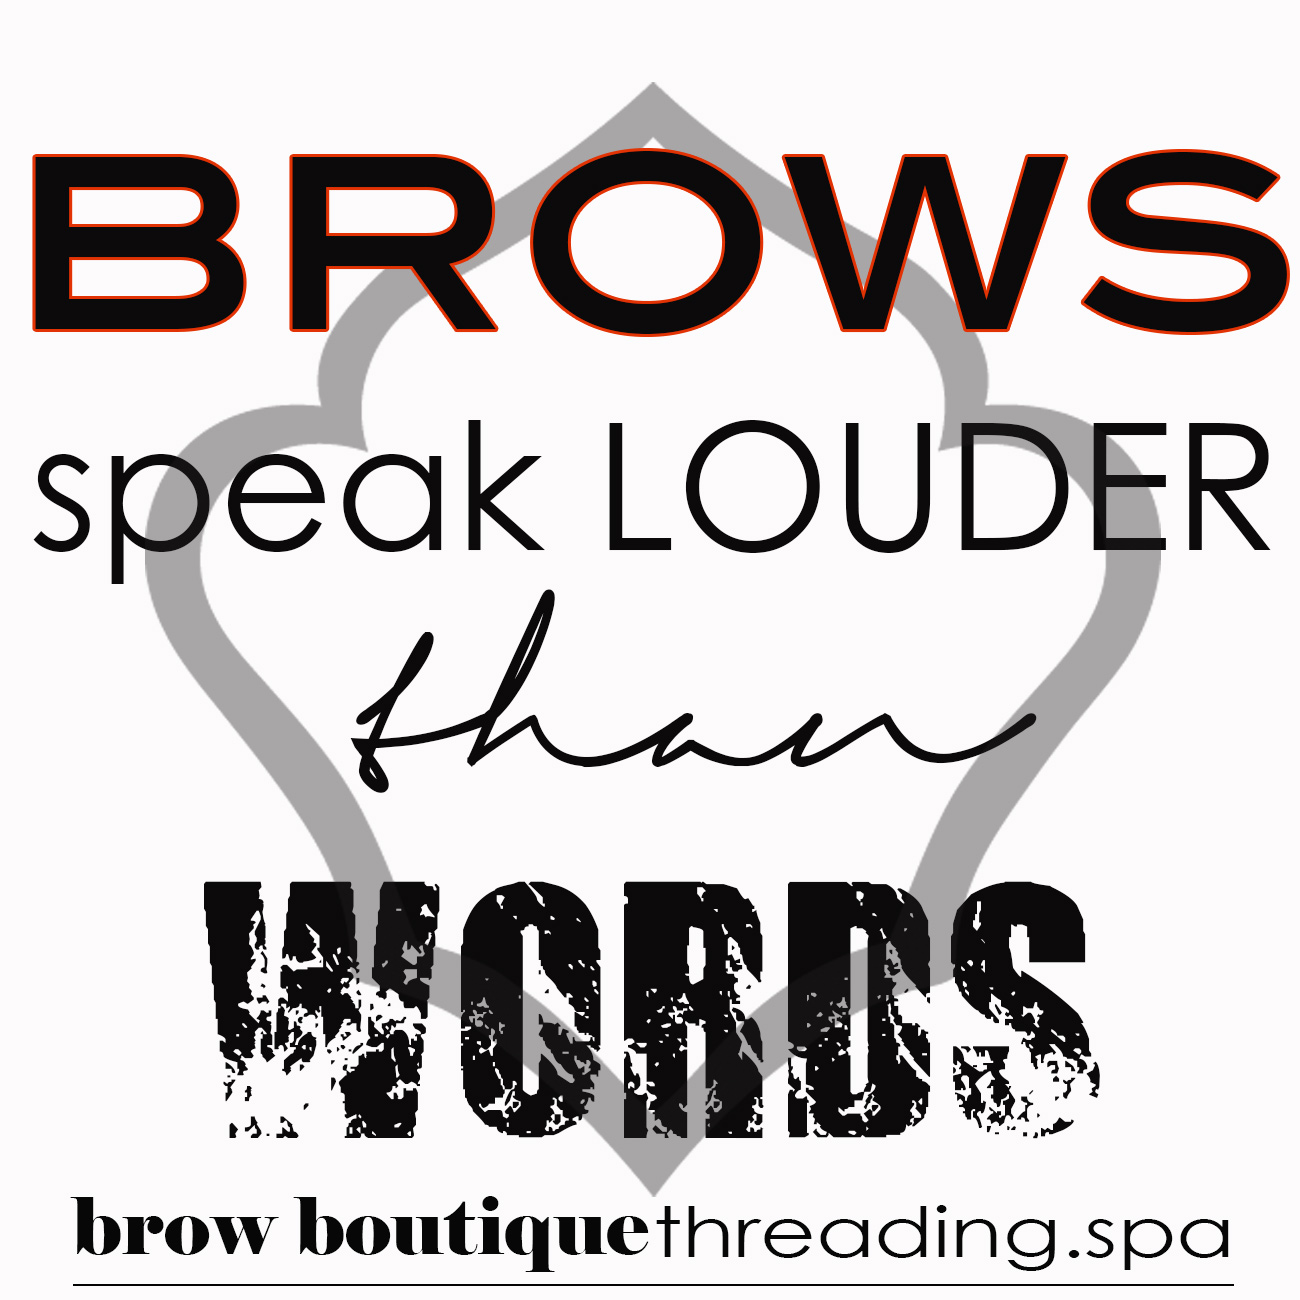 Brow speak louder than words